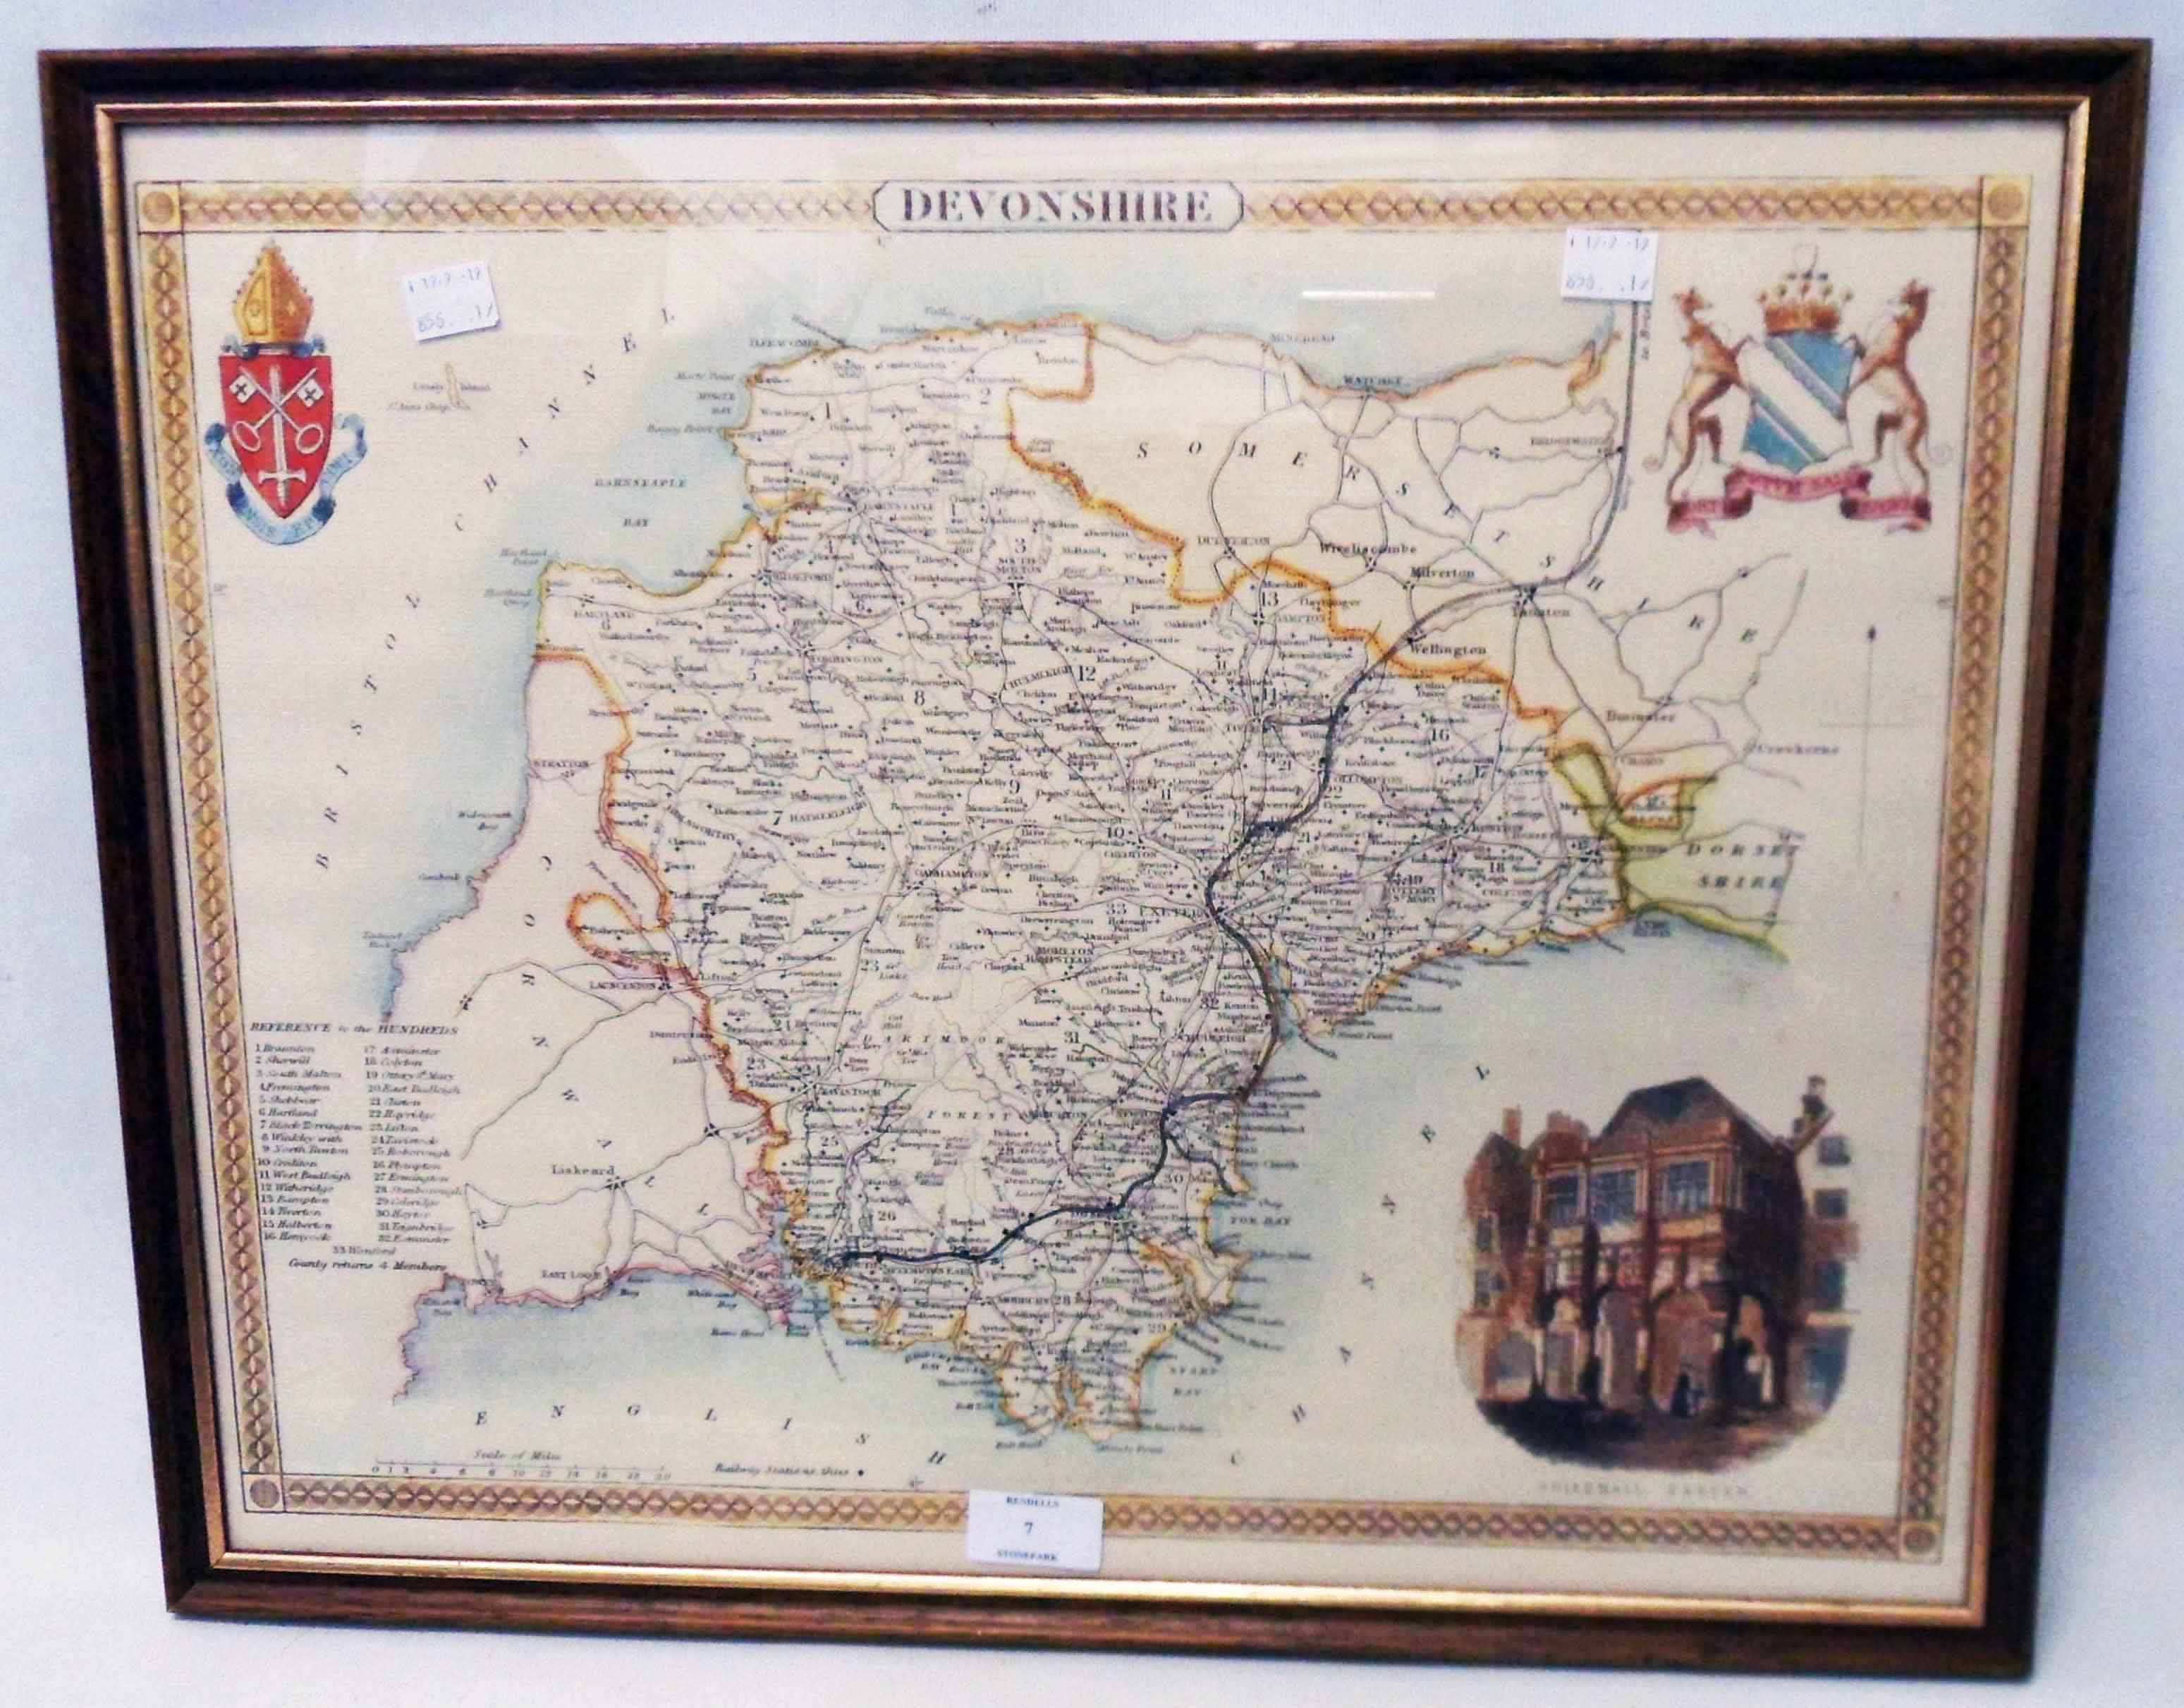 A framed reproduction coloured map print of Devonshire